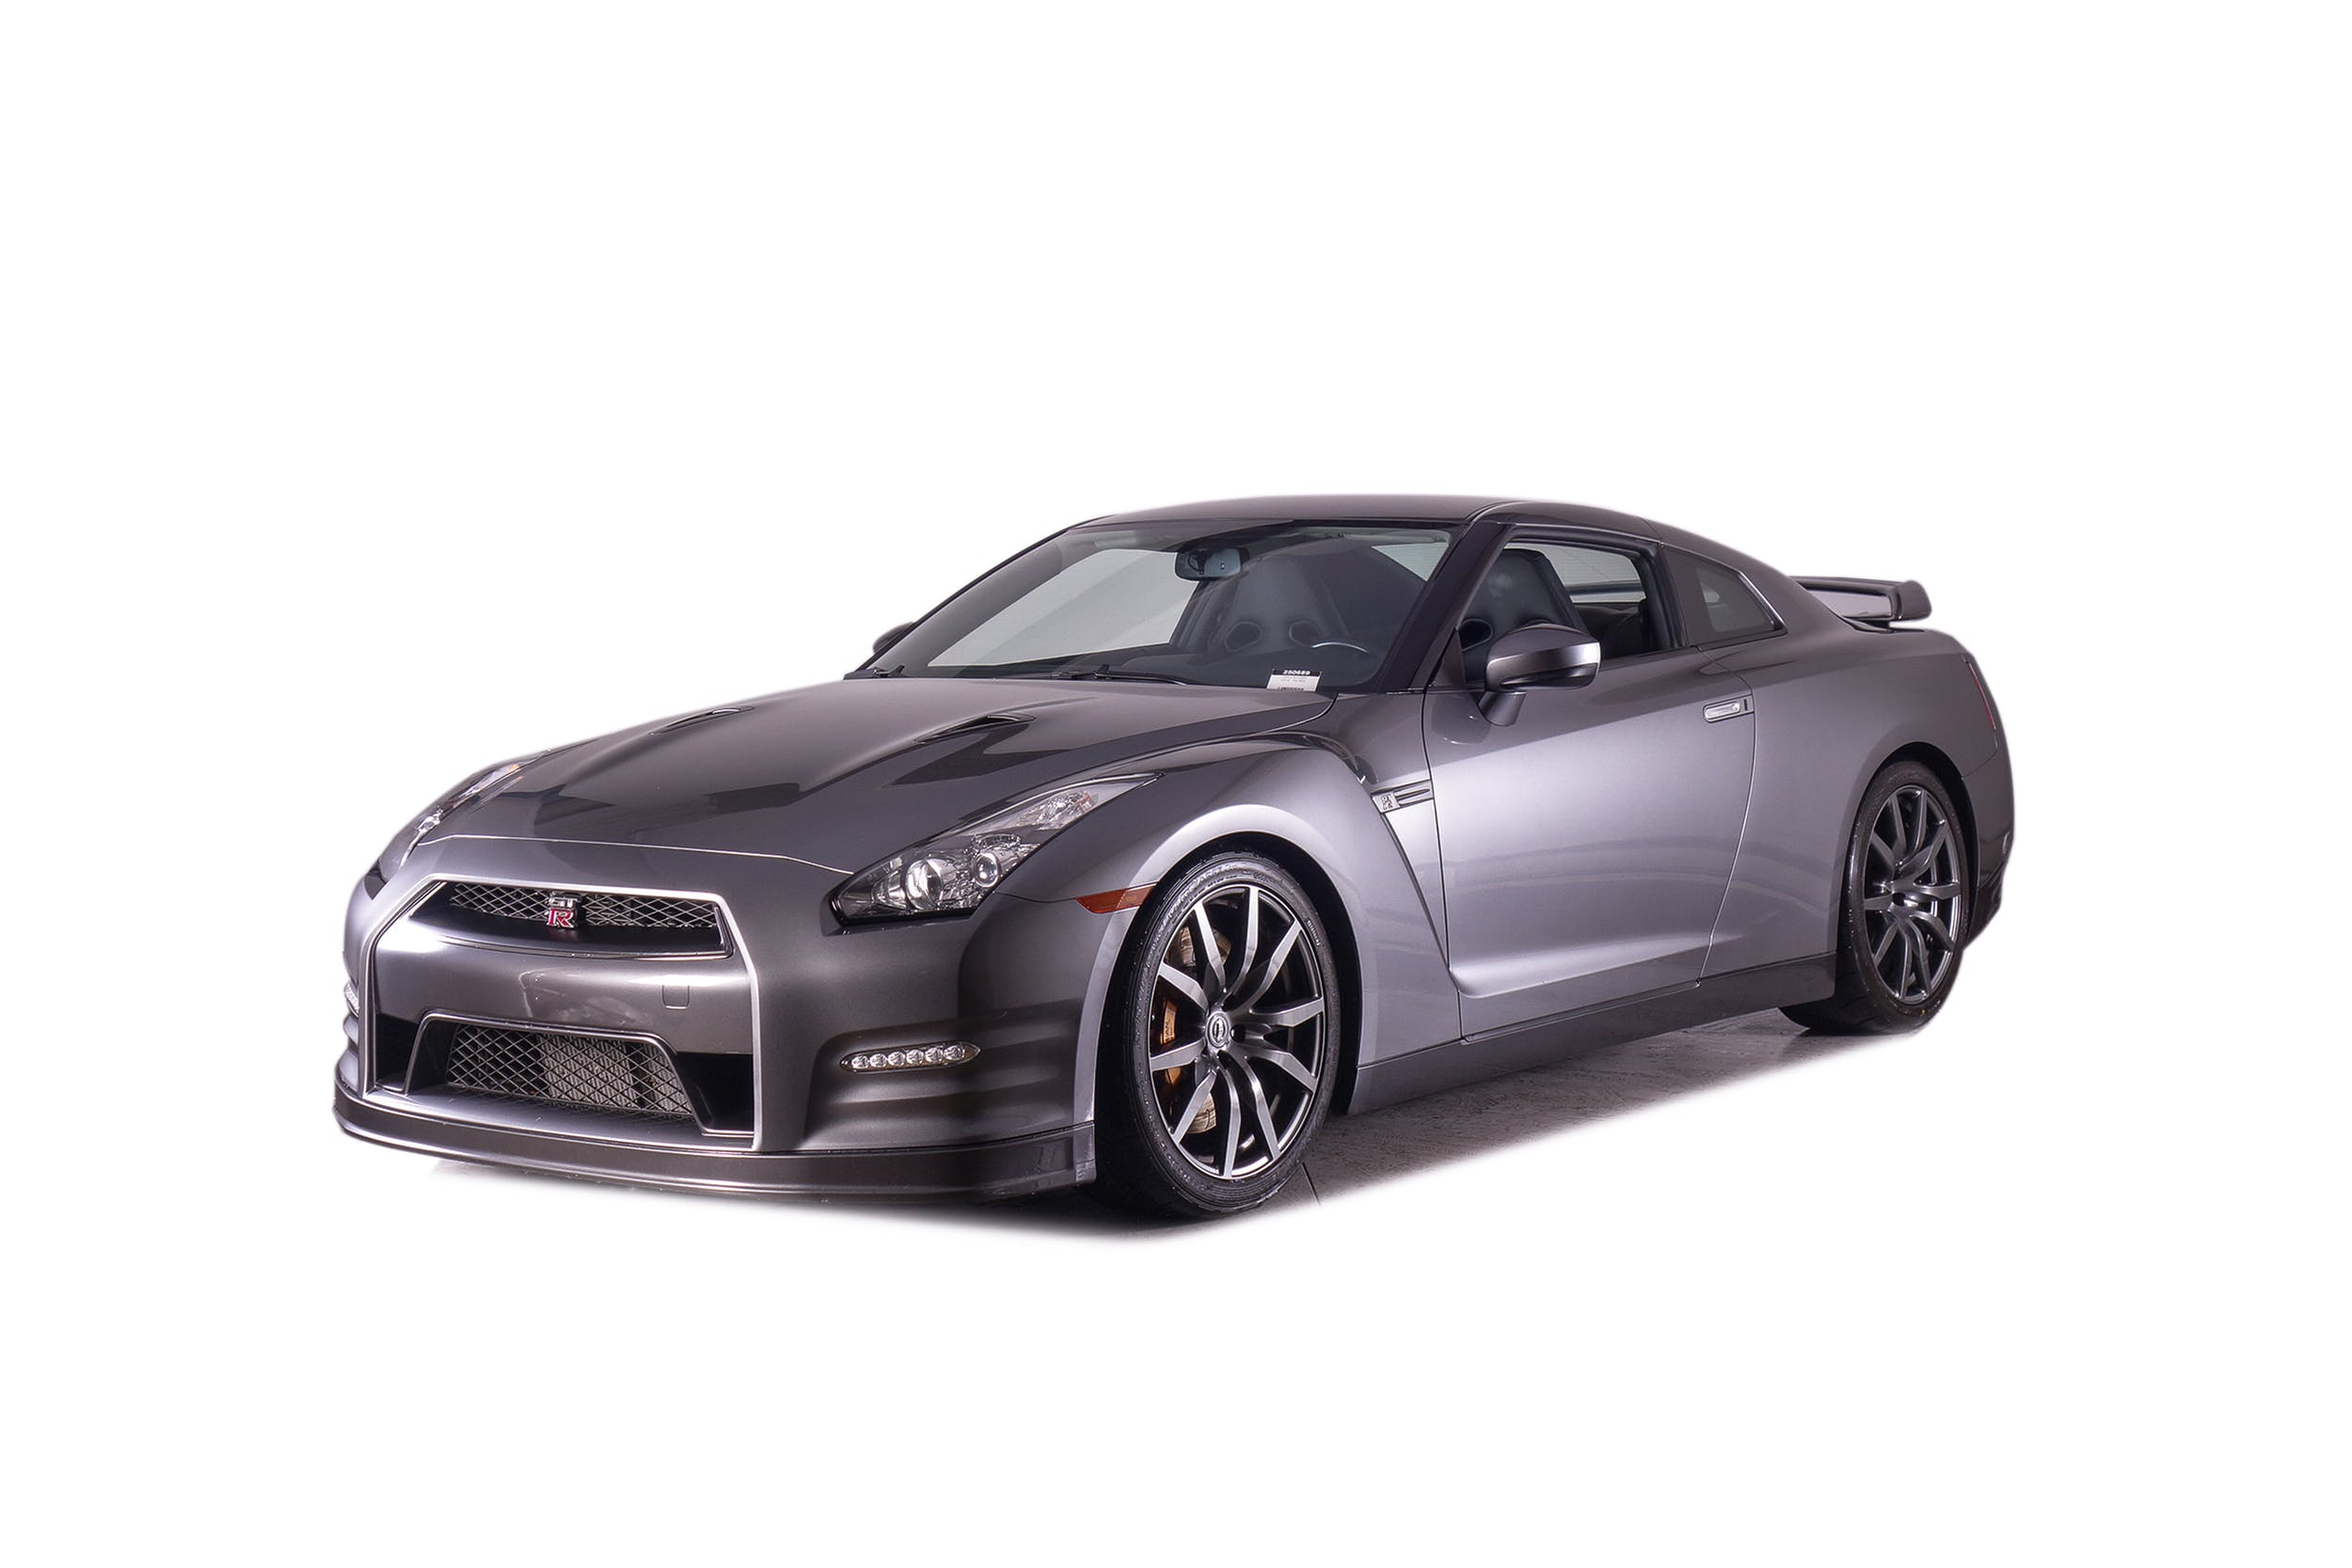 Used Nissan Gt-r for Sale Awesome A Used 2012 Nissan Gt R Premium